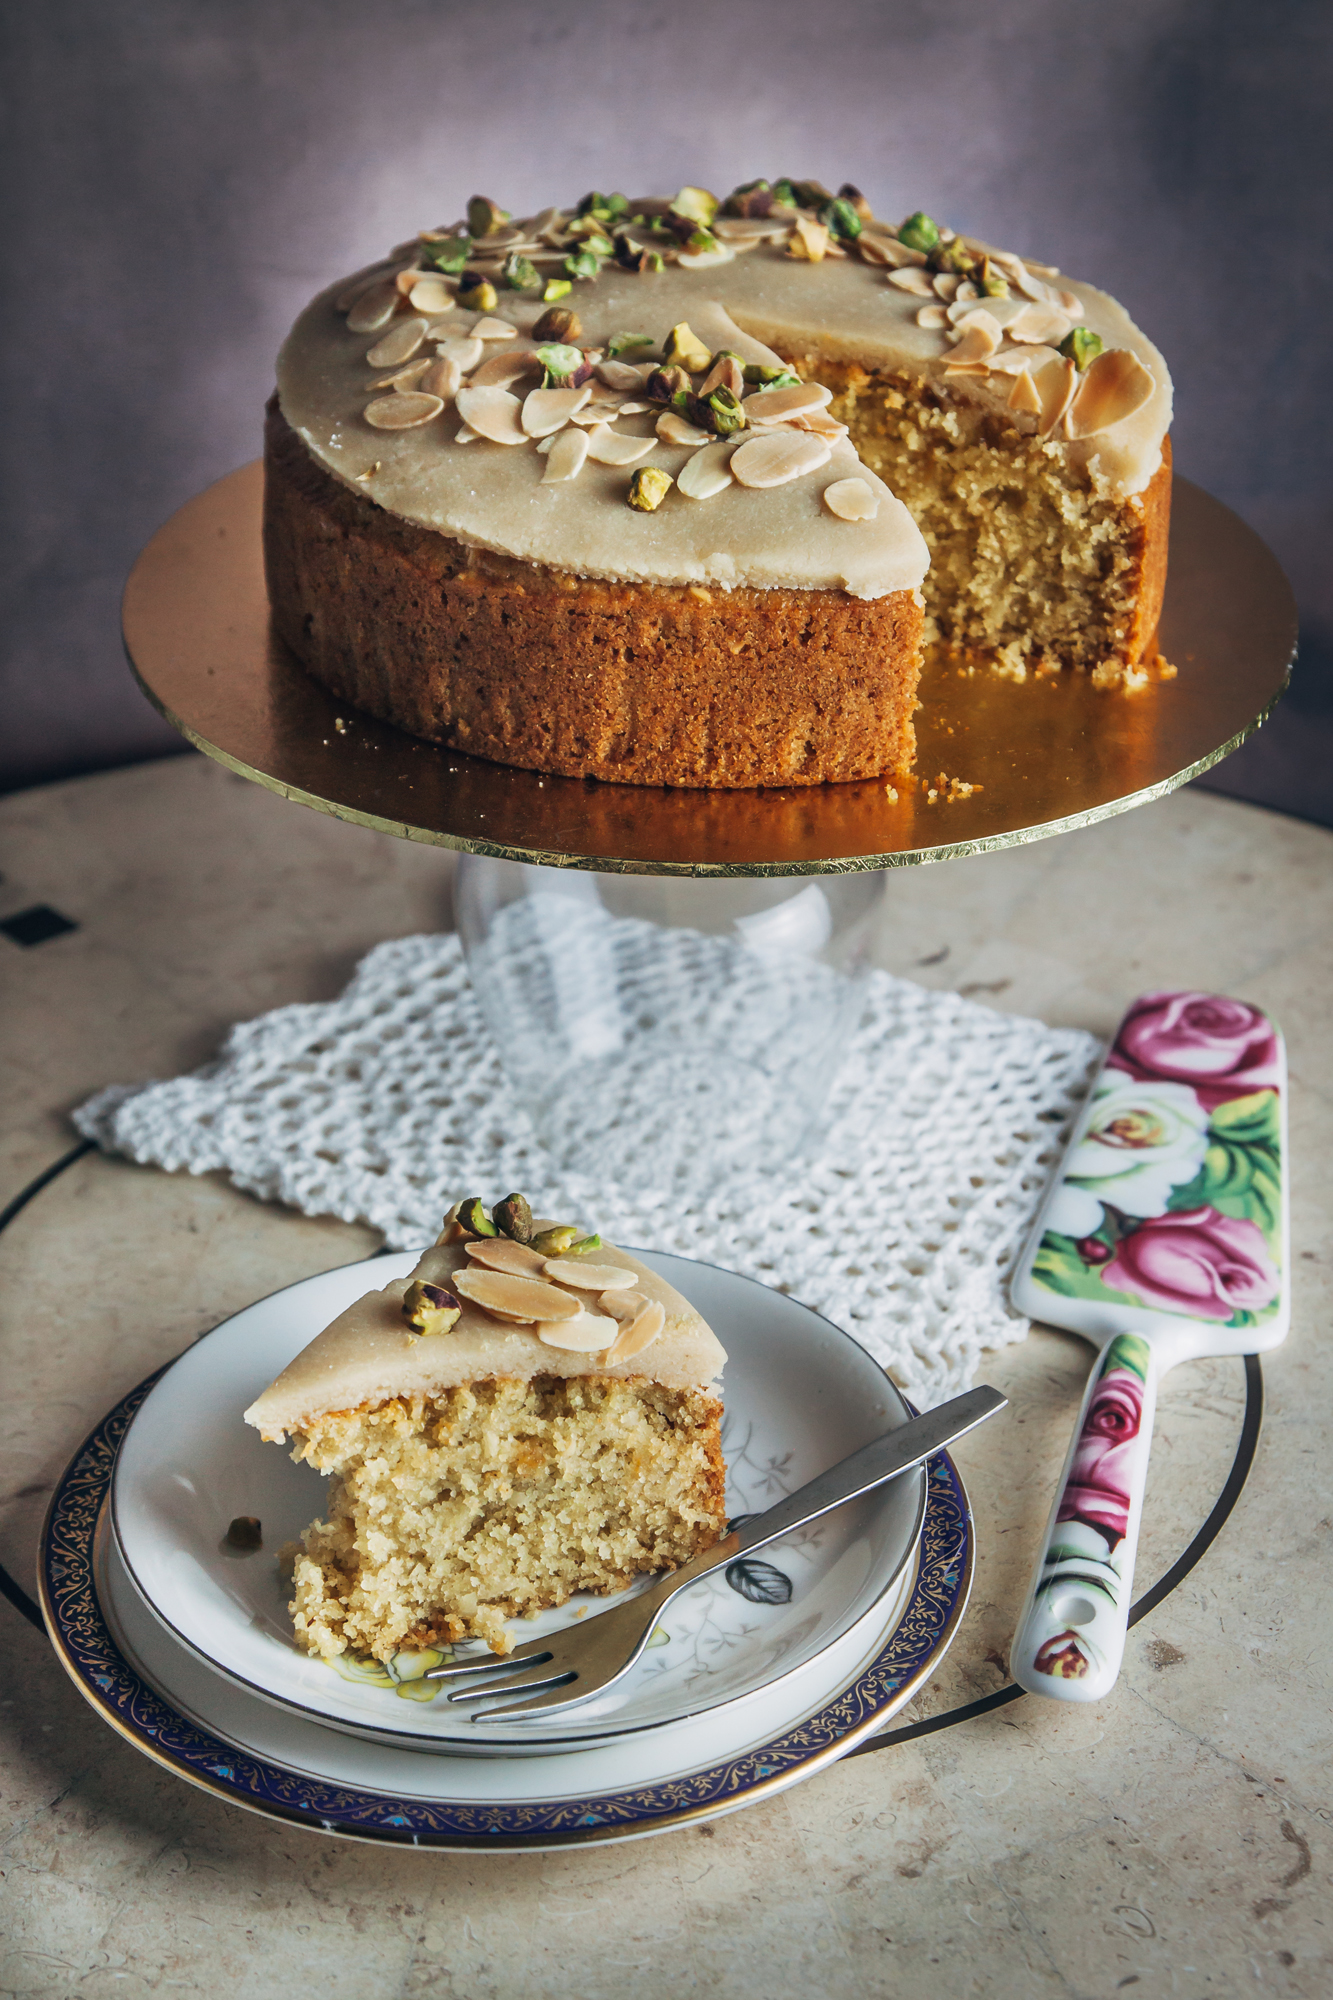 Almond and semolina sugee cake from Jackfruit and Blue Ginger by Sasha Gill (Sasha Gill/PA)